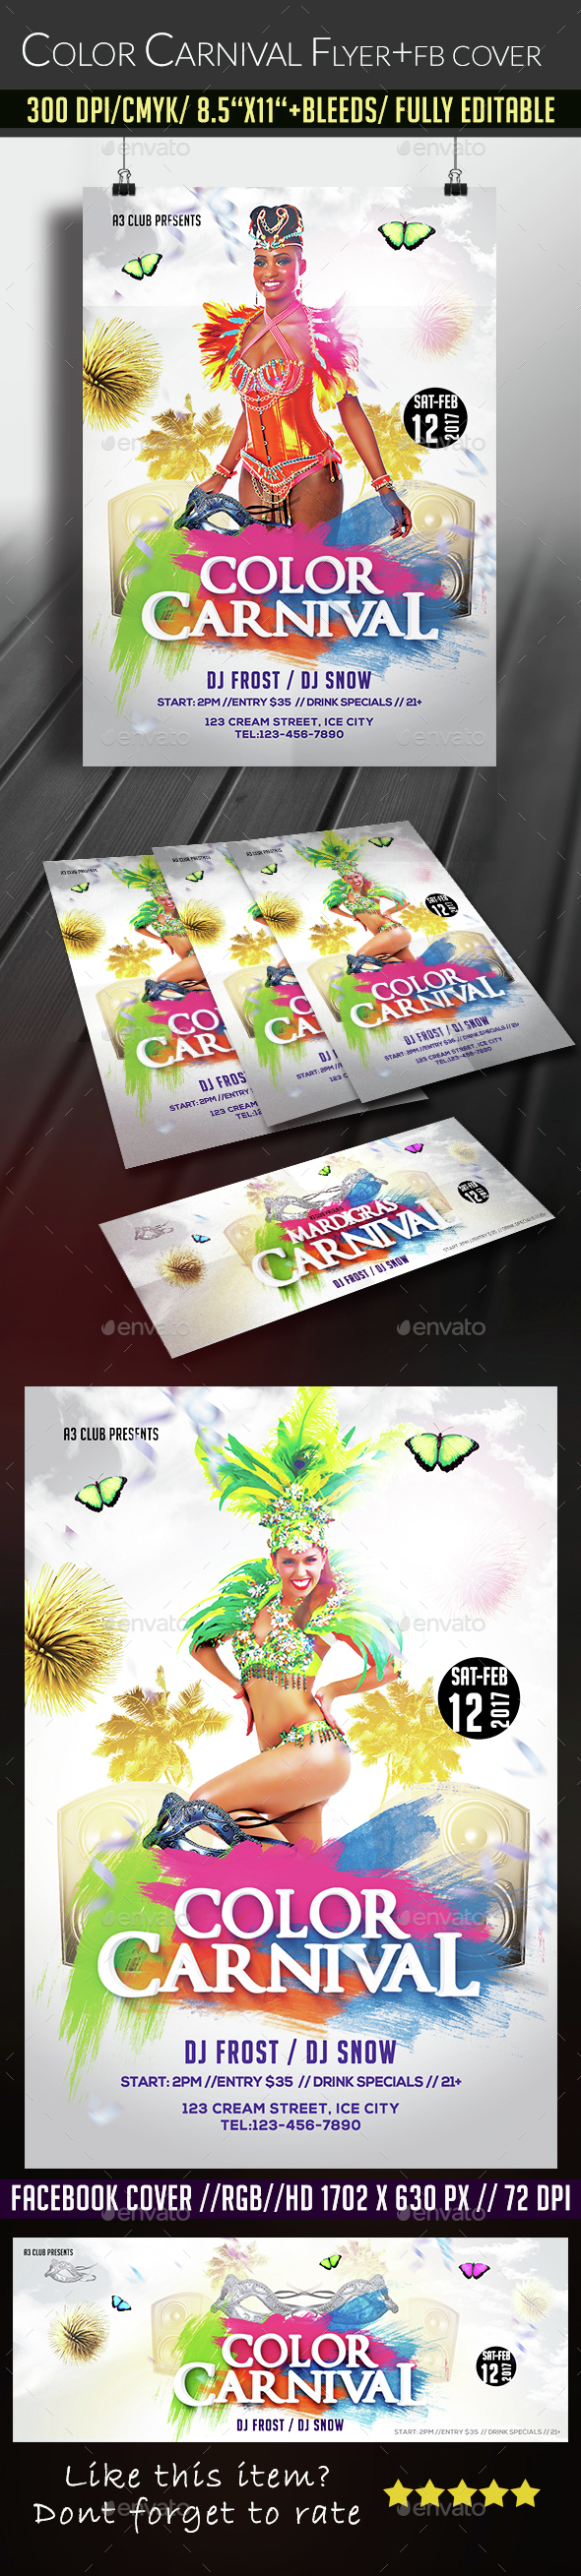 Color Carnival Flyer + Facebook Cover - Clubs & Parties Events